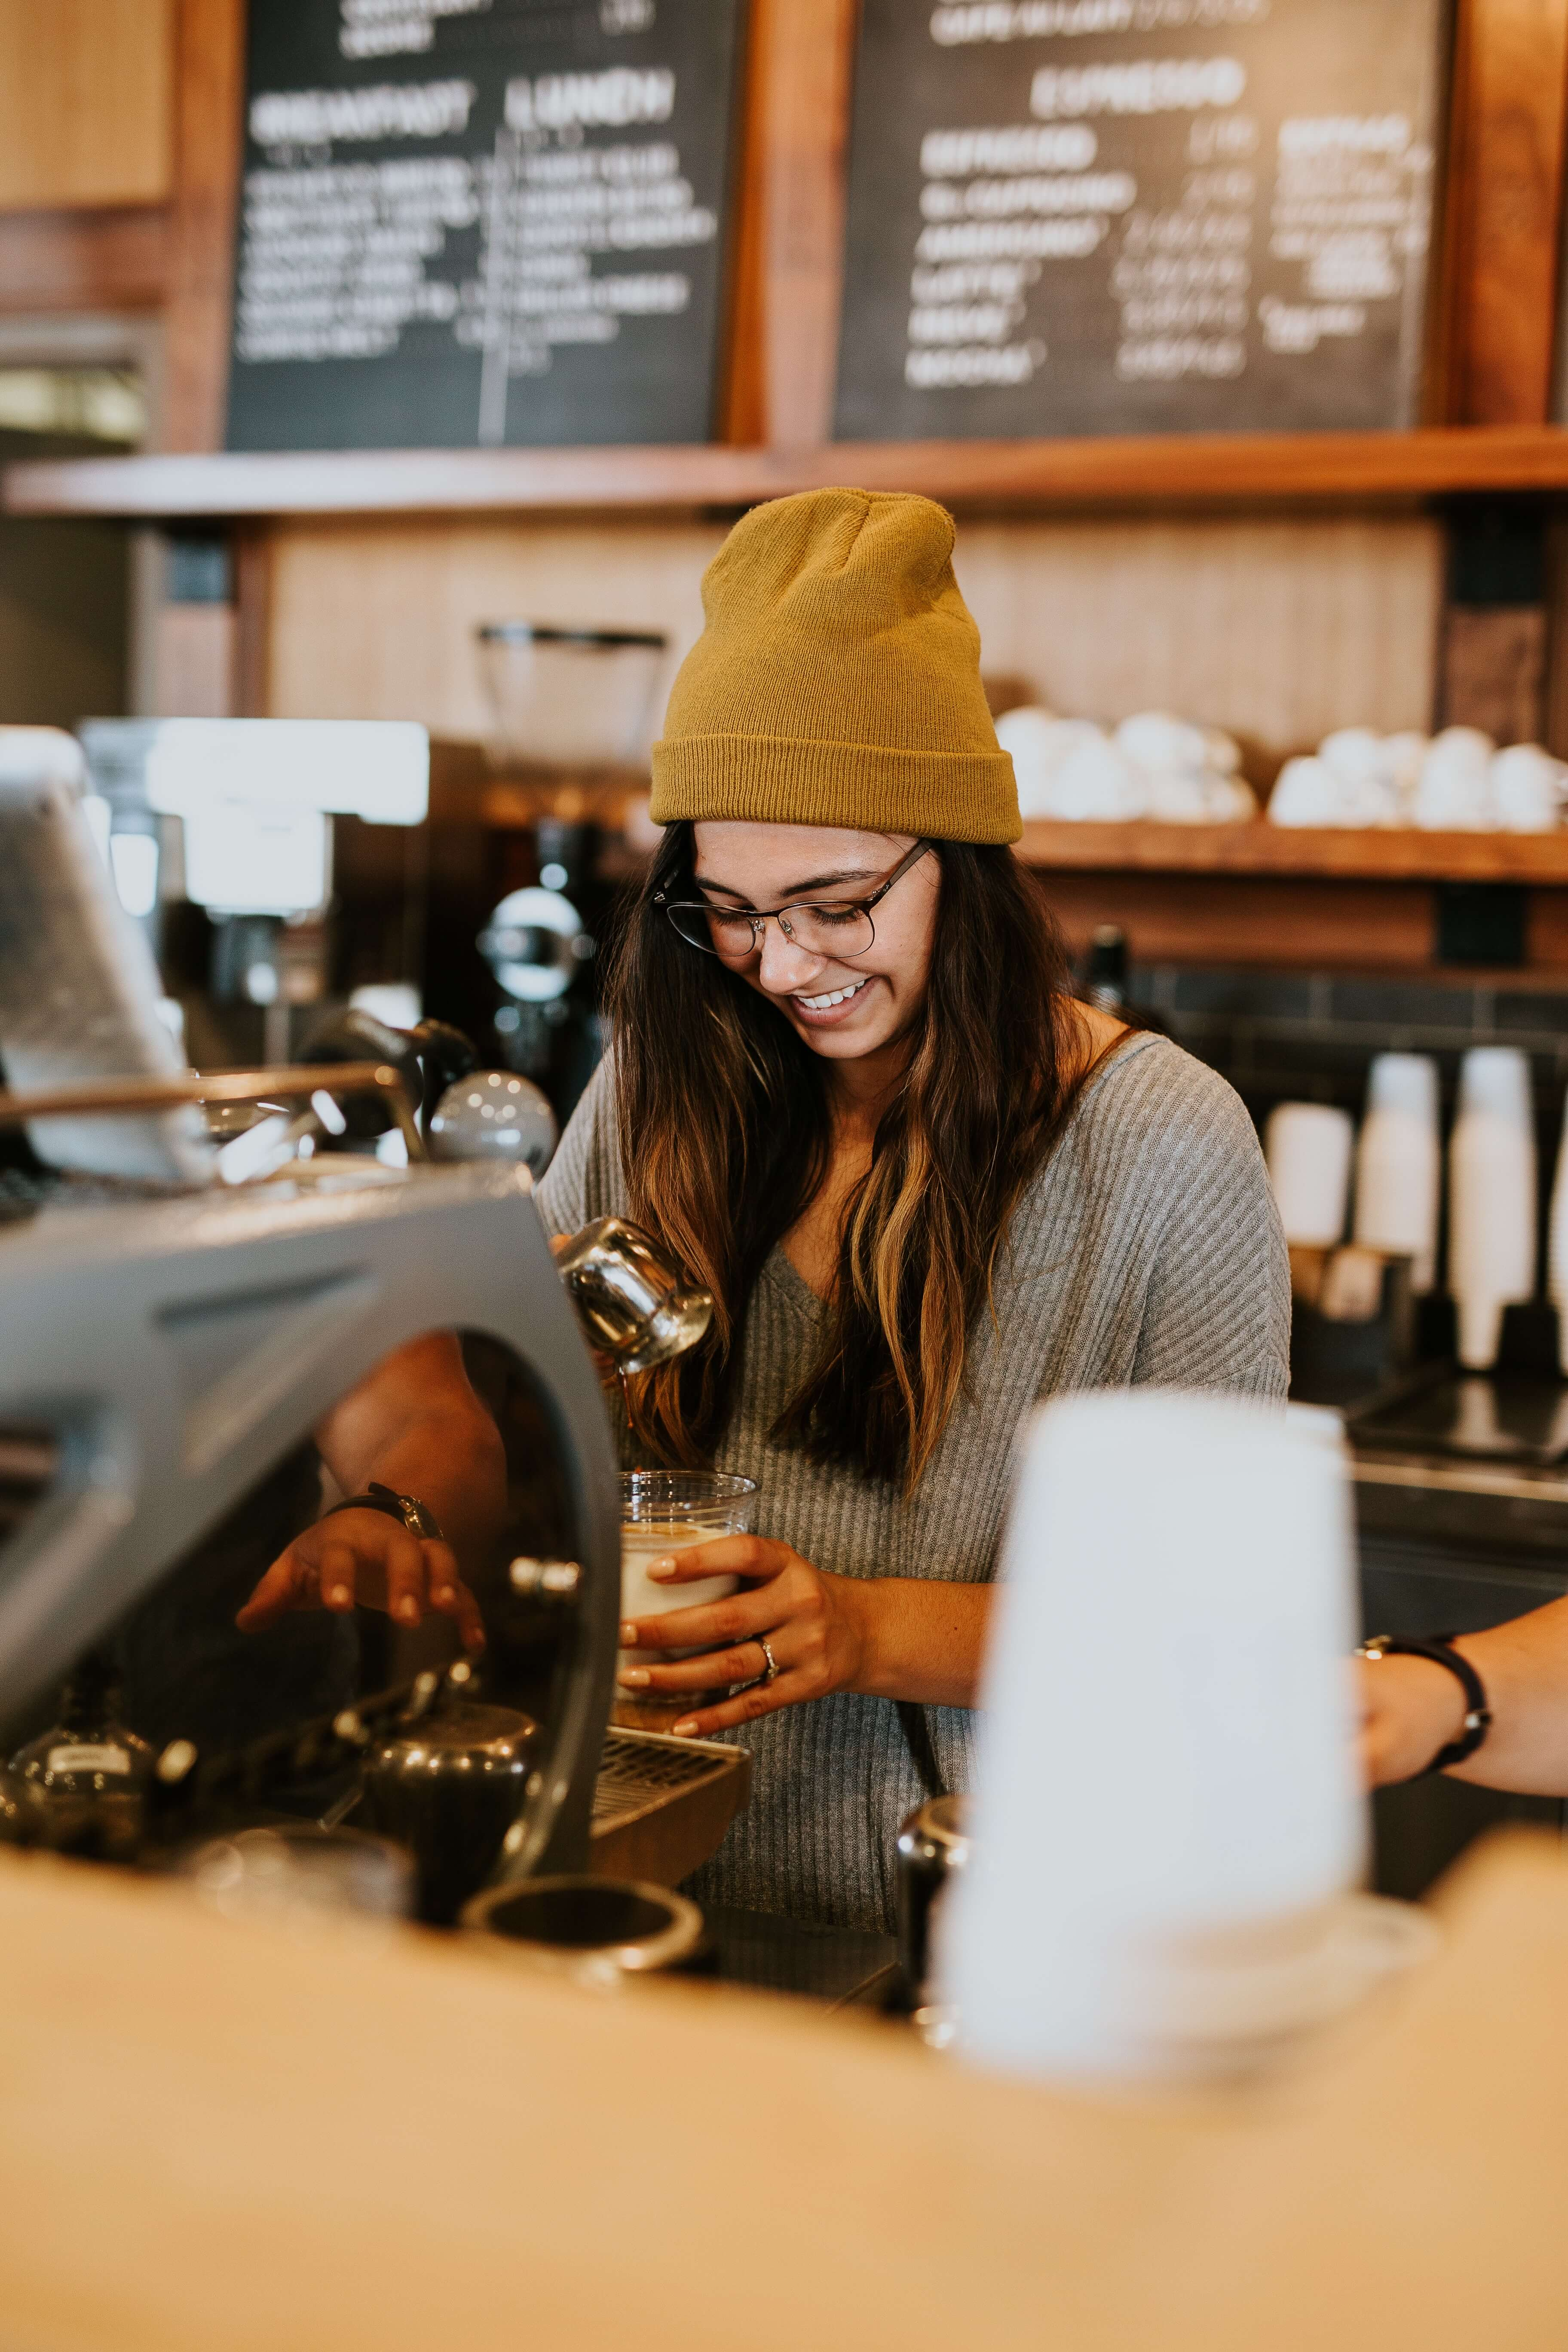 A young barista brews a cup of coffee.